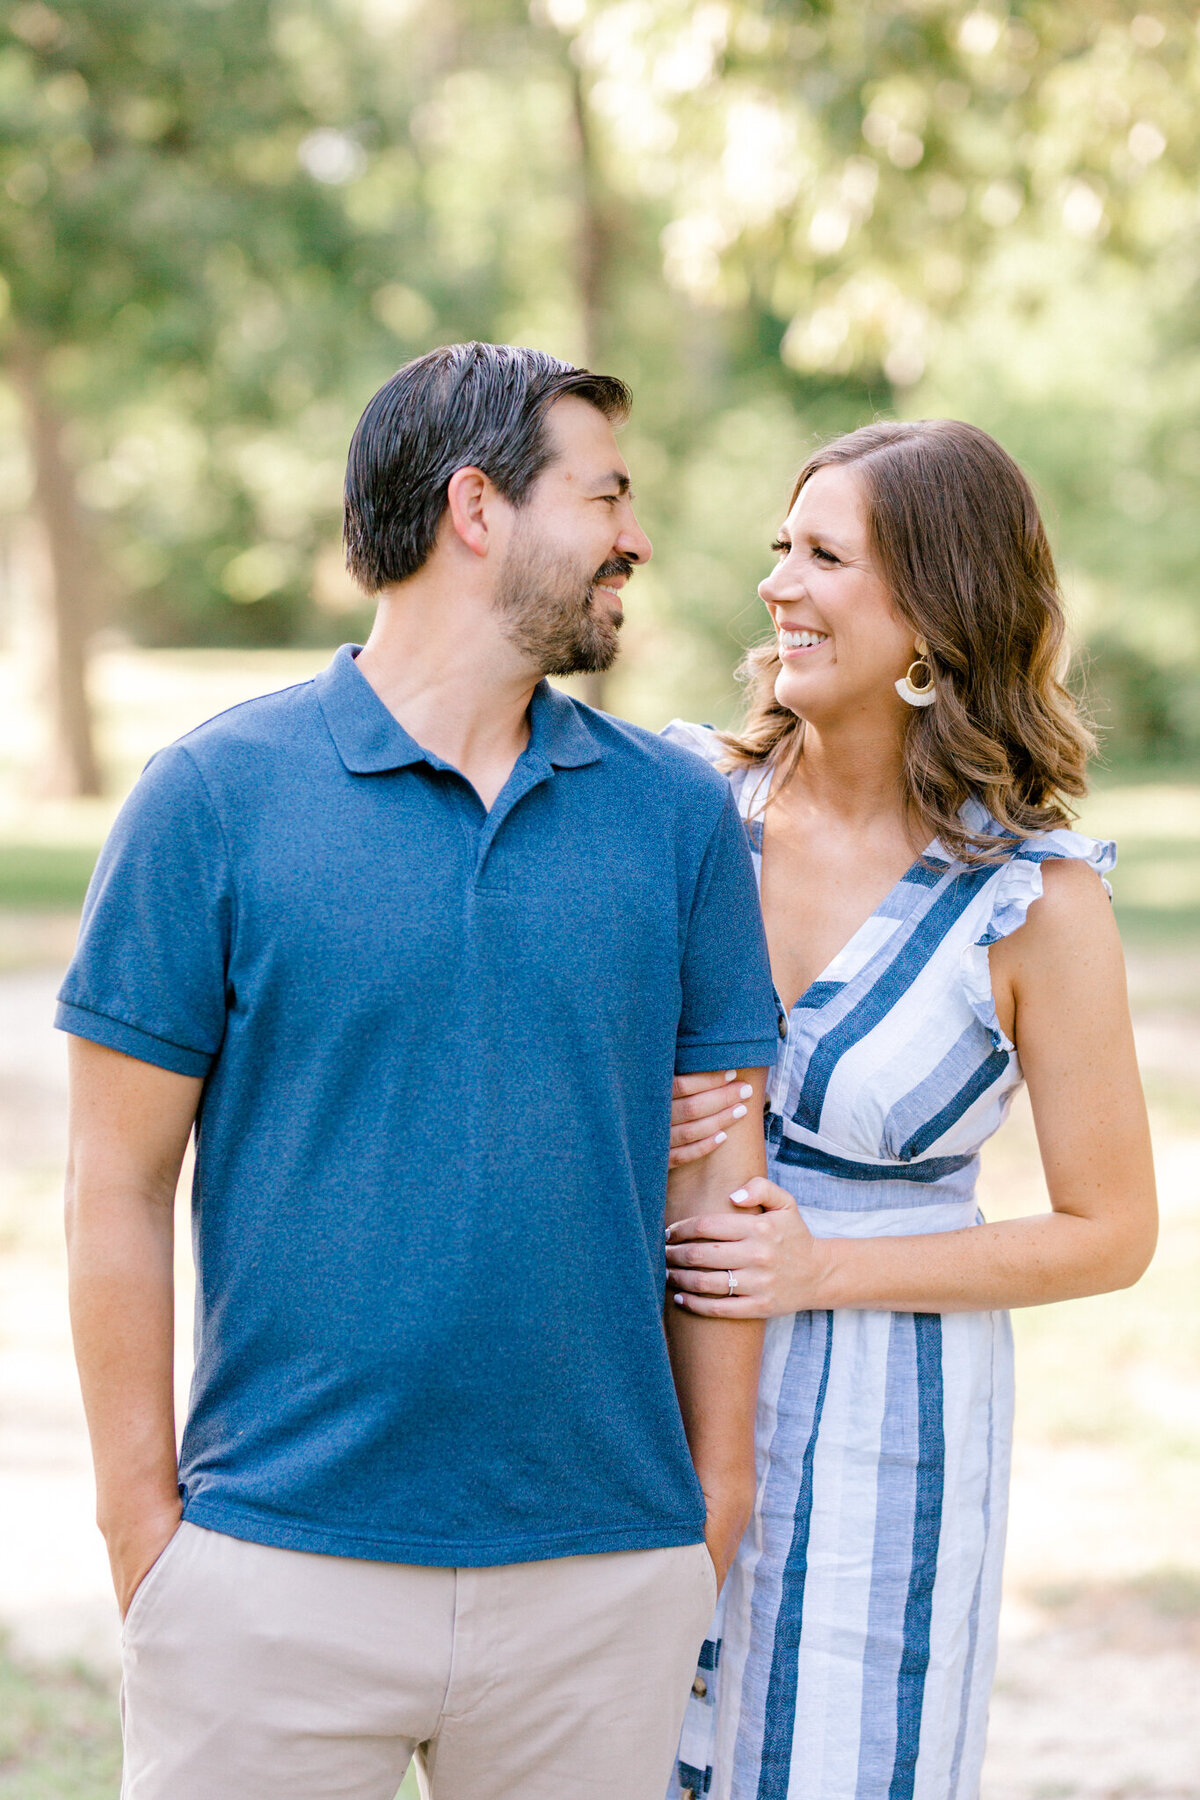 Catherine & Clint Engagement Session at White Rock Lake | Sami Kathryn Photography | Dallas Wedding & Portrait Photographer-2